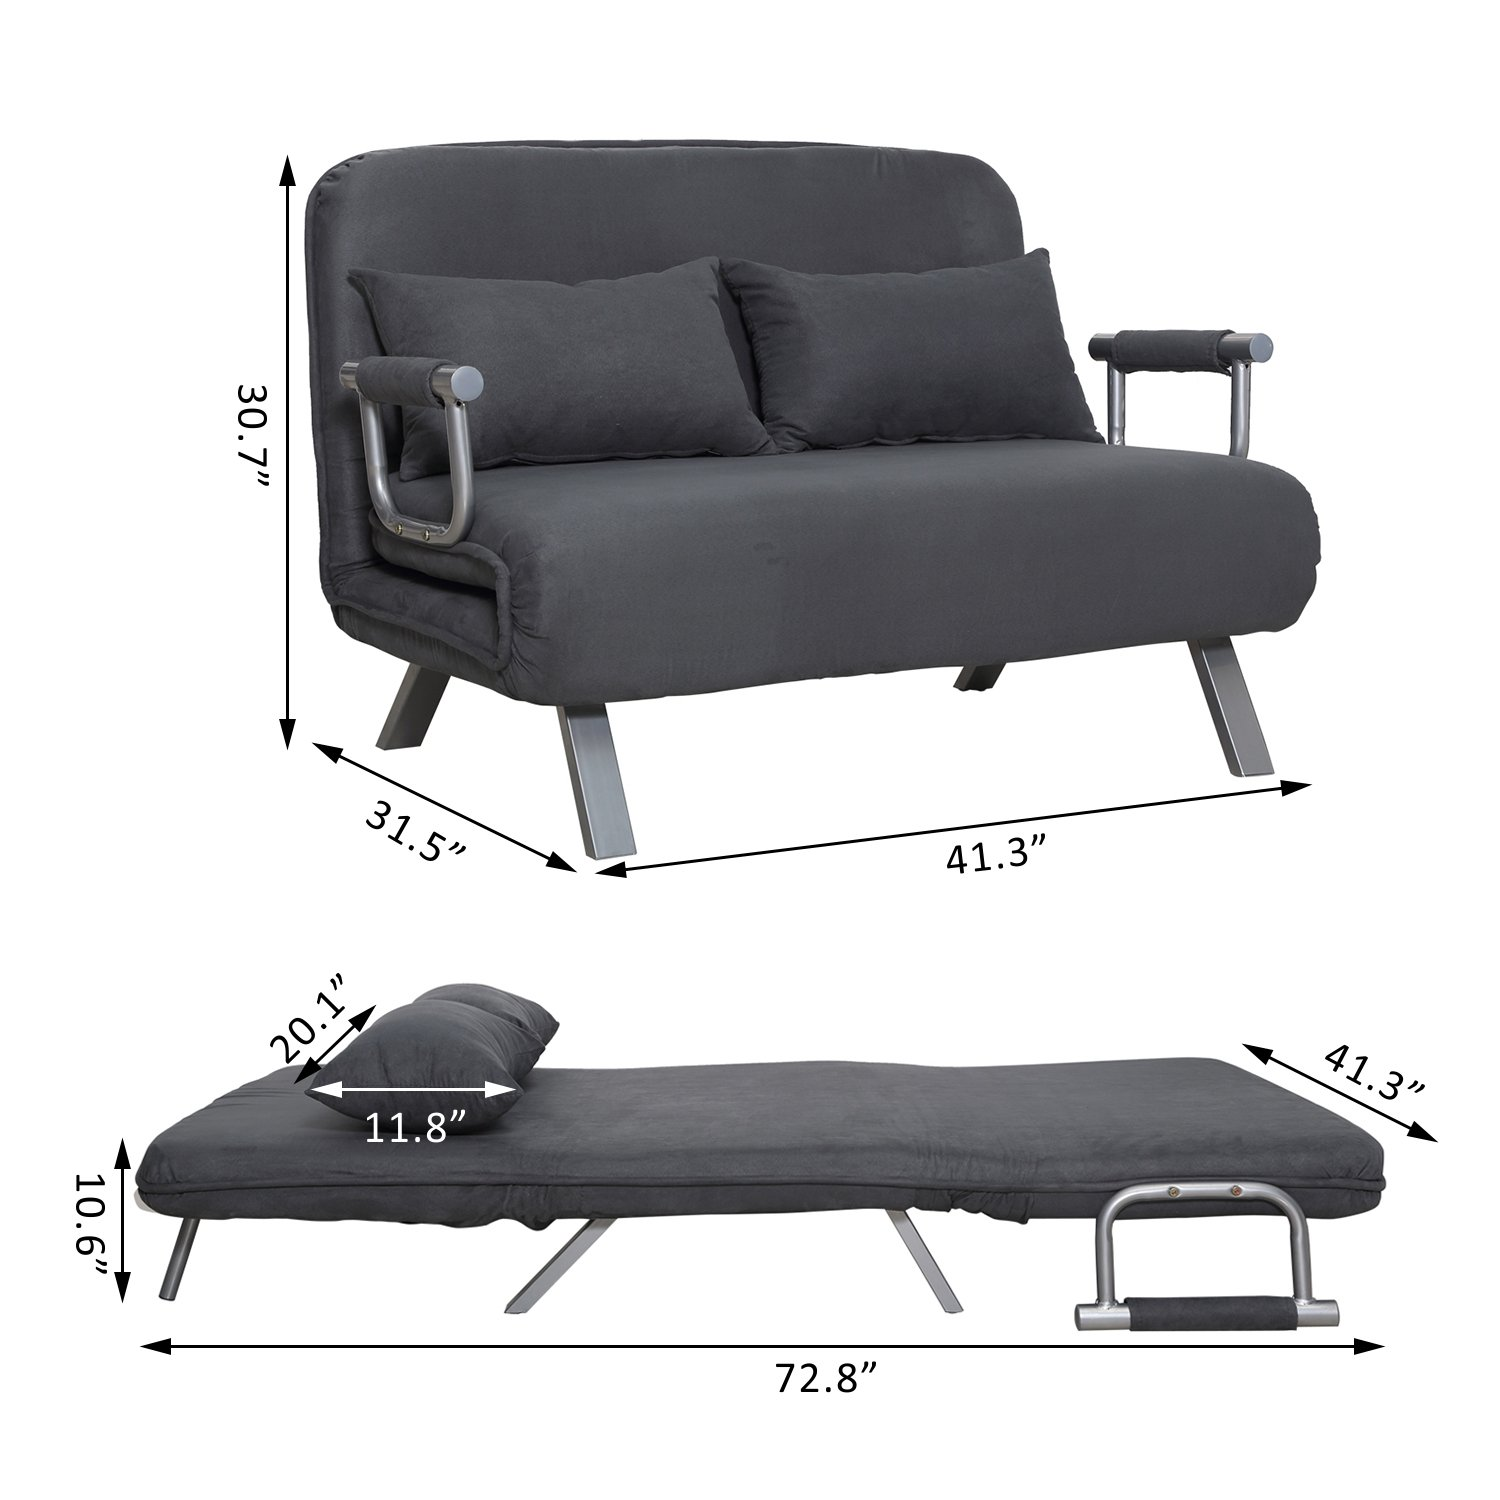 Oversized Sleeper Chairs & Sofas For Heavy People